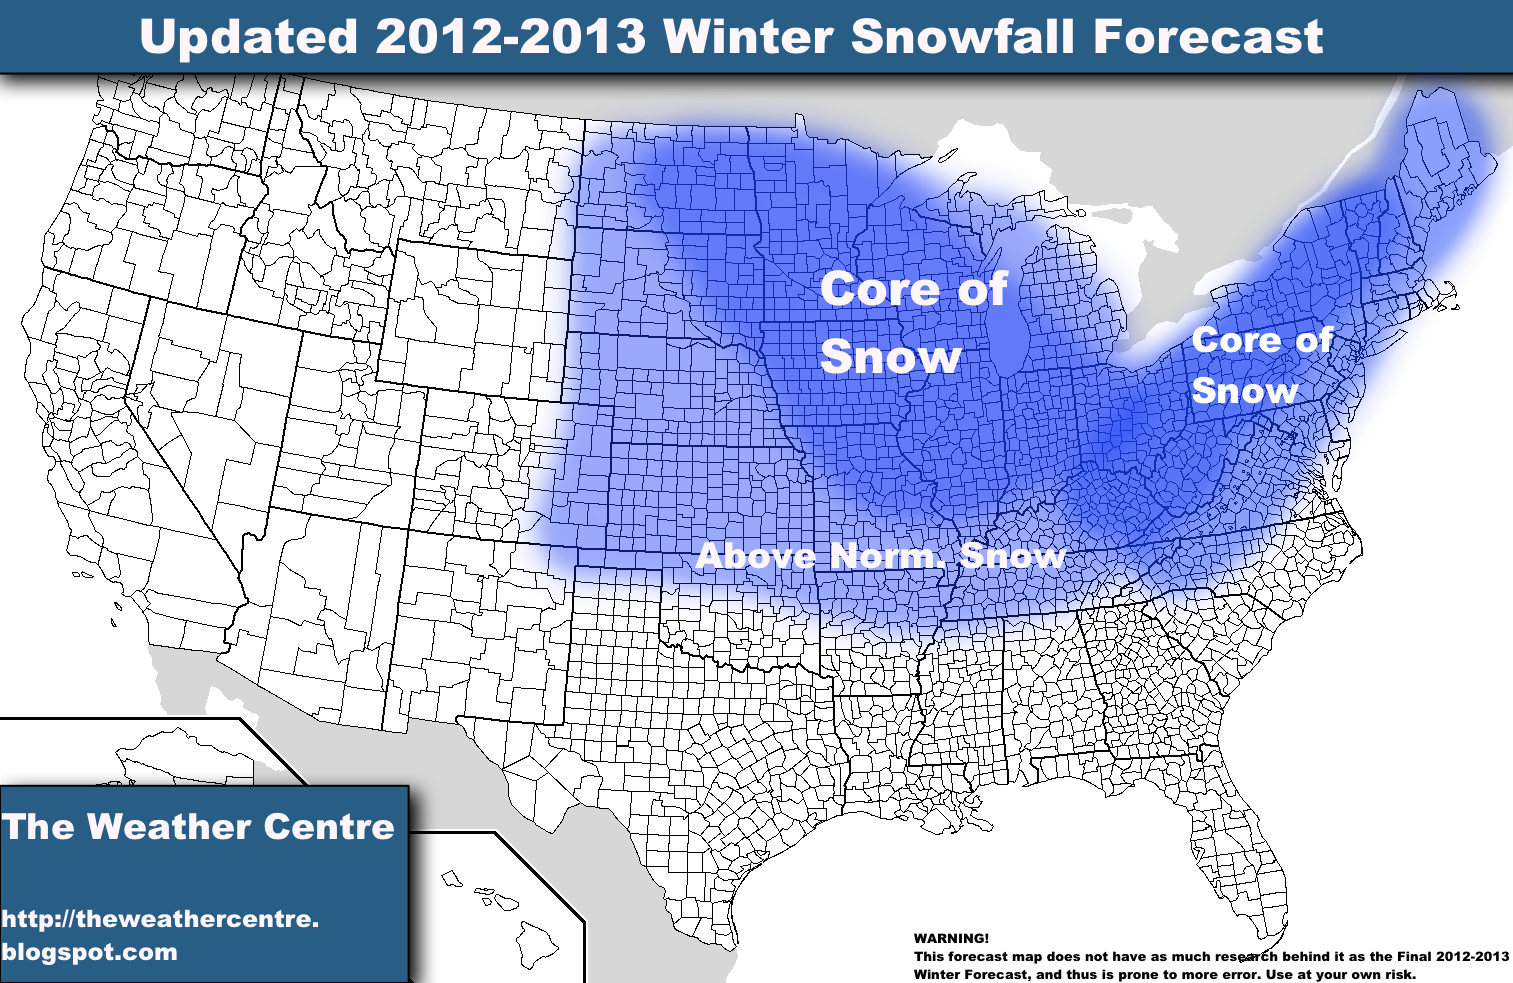 am expecting in terms of snowfall this winter please note that this